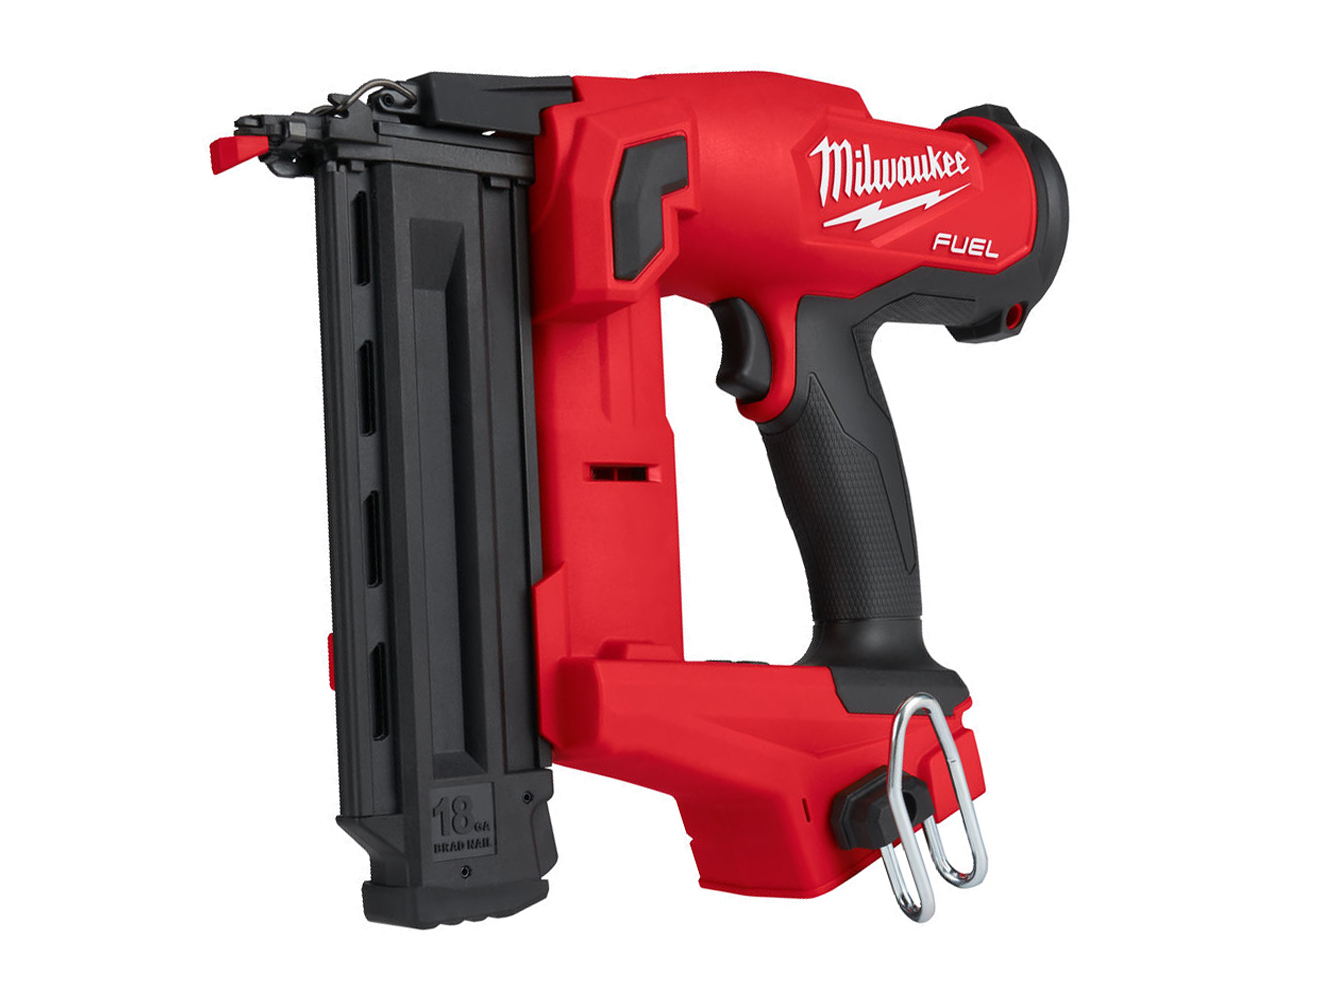 Milwaukee M18FN18GS 18V FUEL Brushless 18G 2nd Fix Nailer GS (Gasless Nail Gun) - Body Only